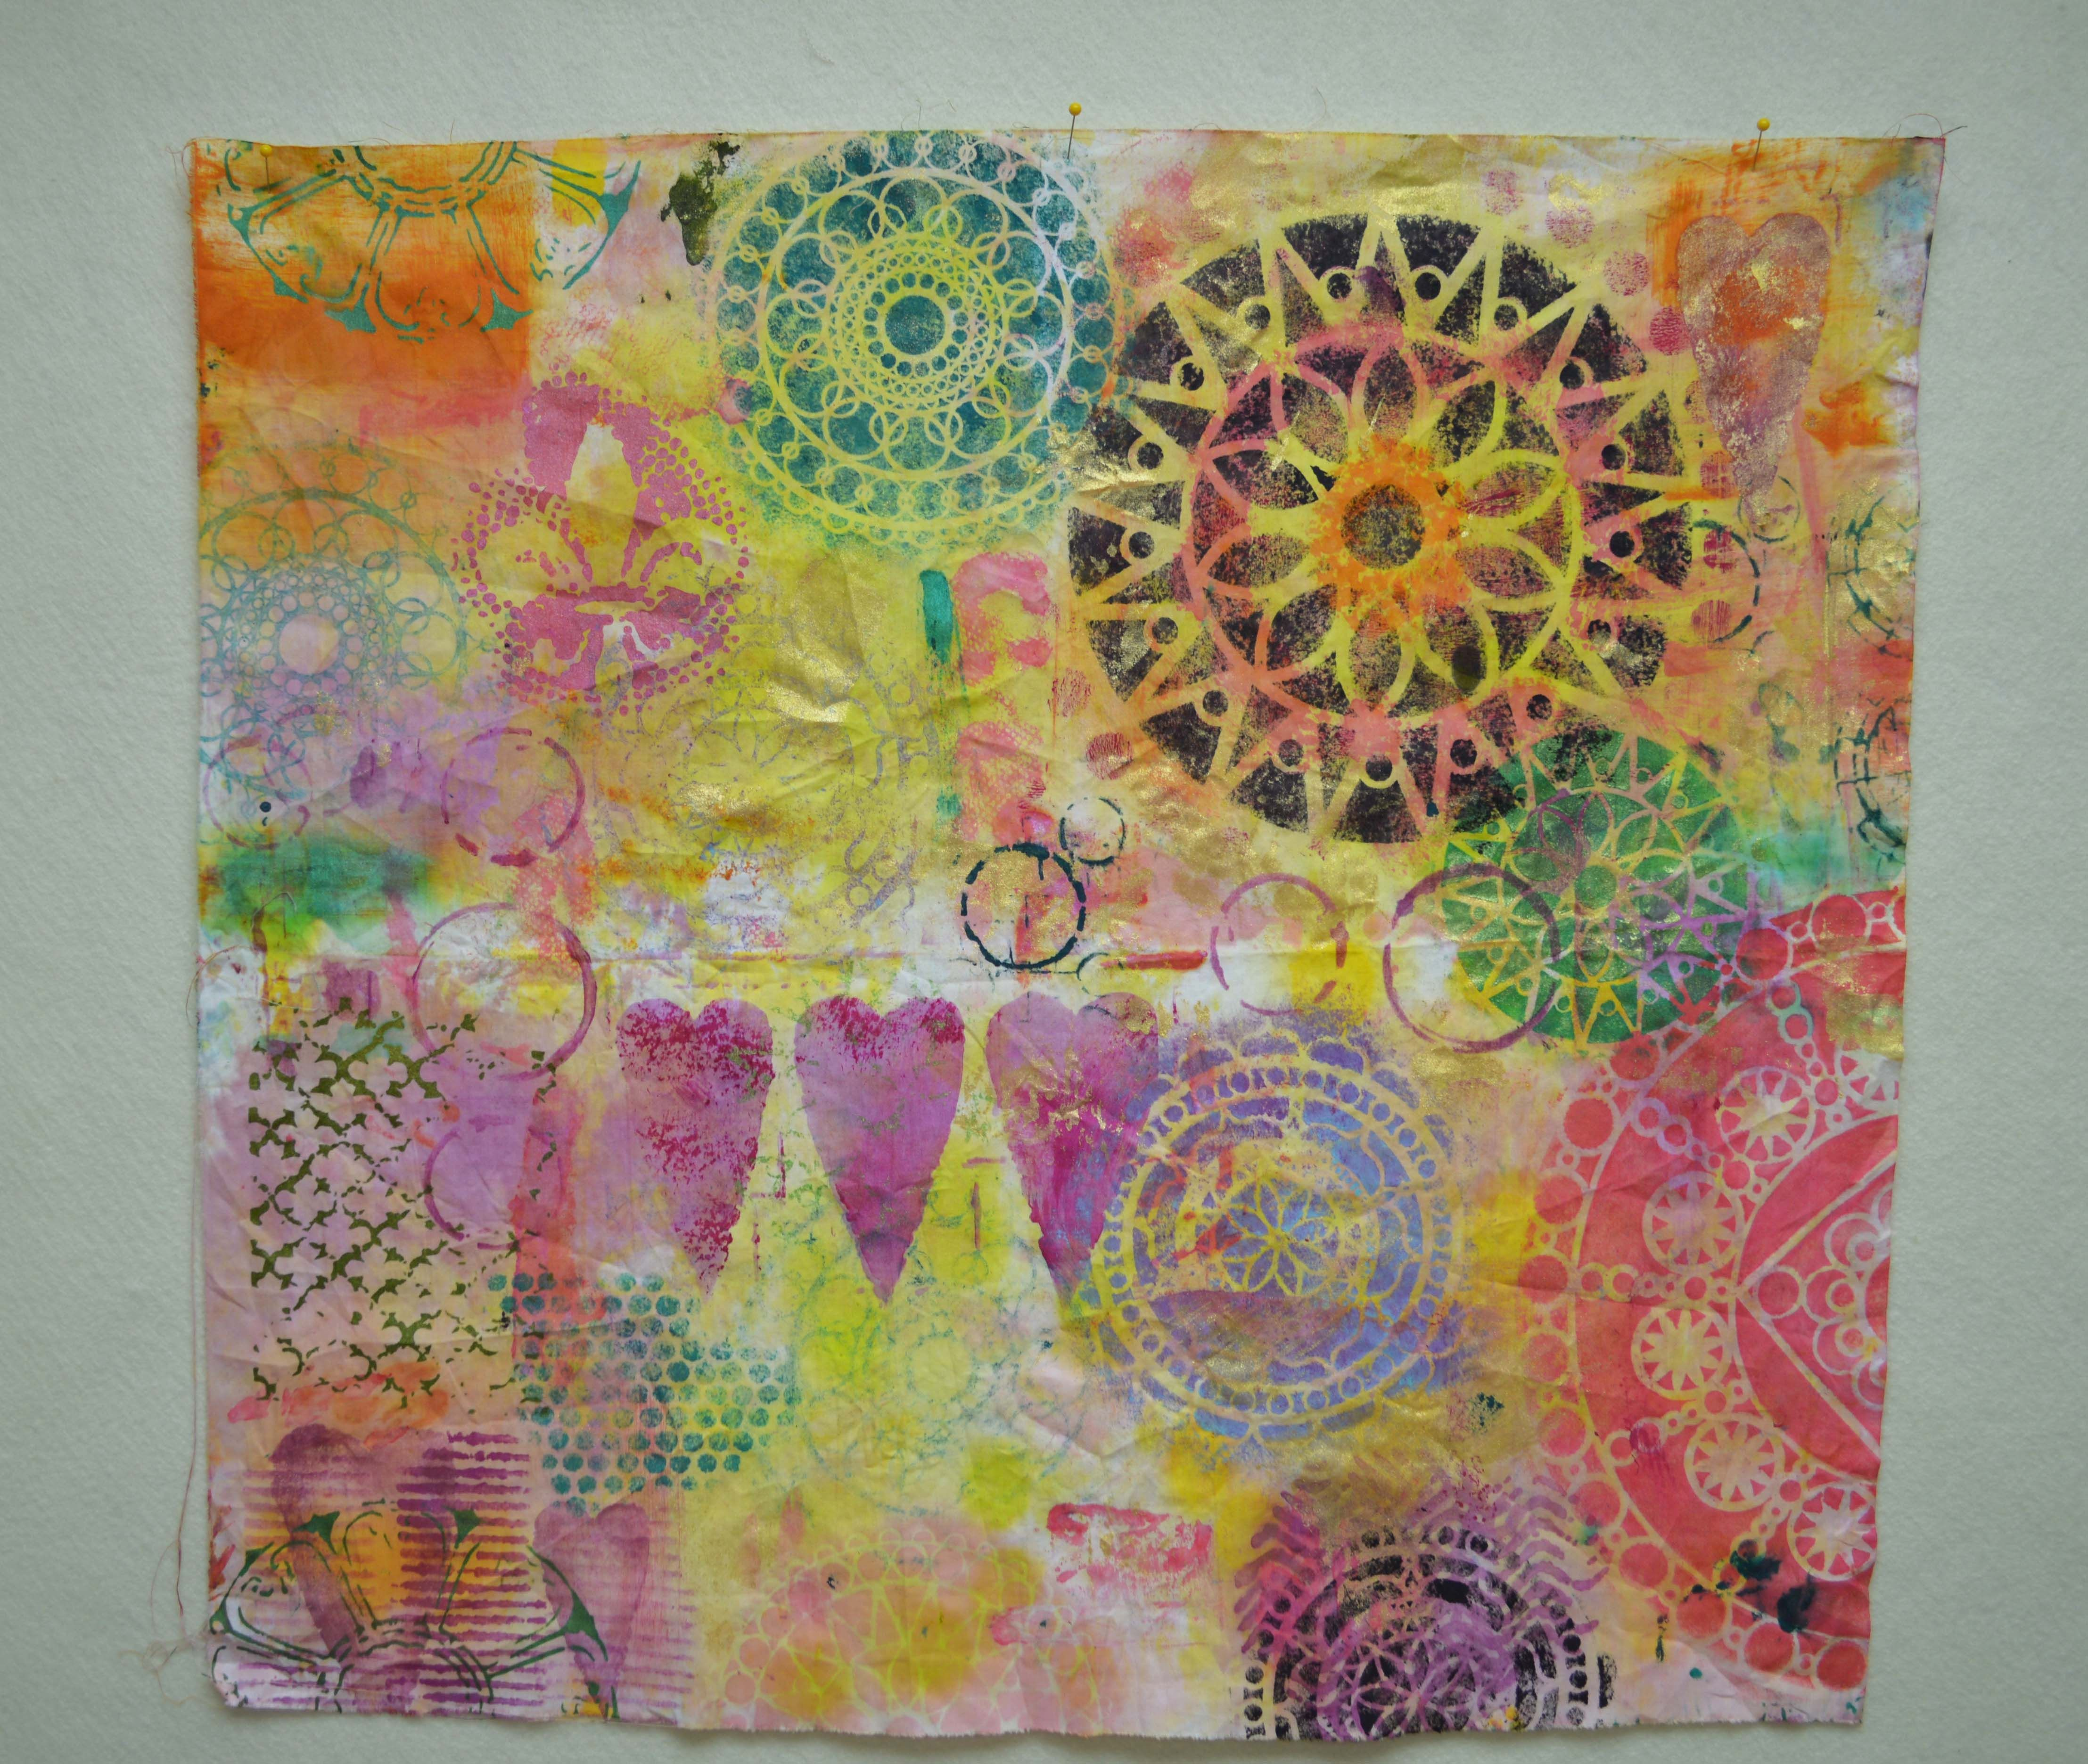 collage style fabric created with Rebekah Meier Stencils from The Crafter's Workshop